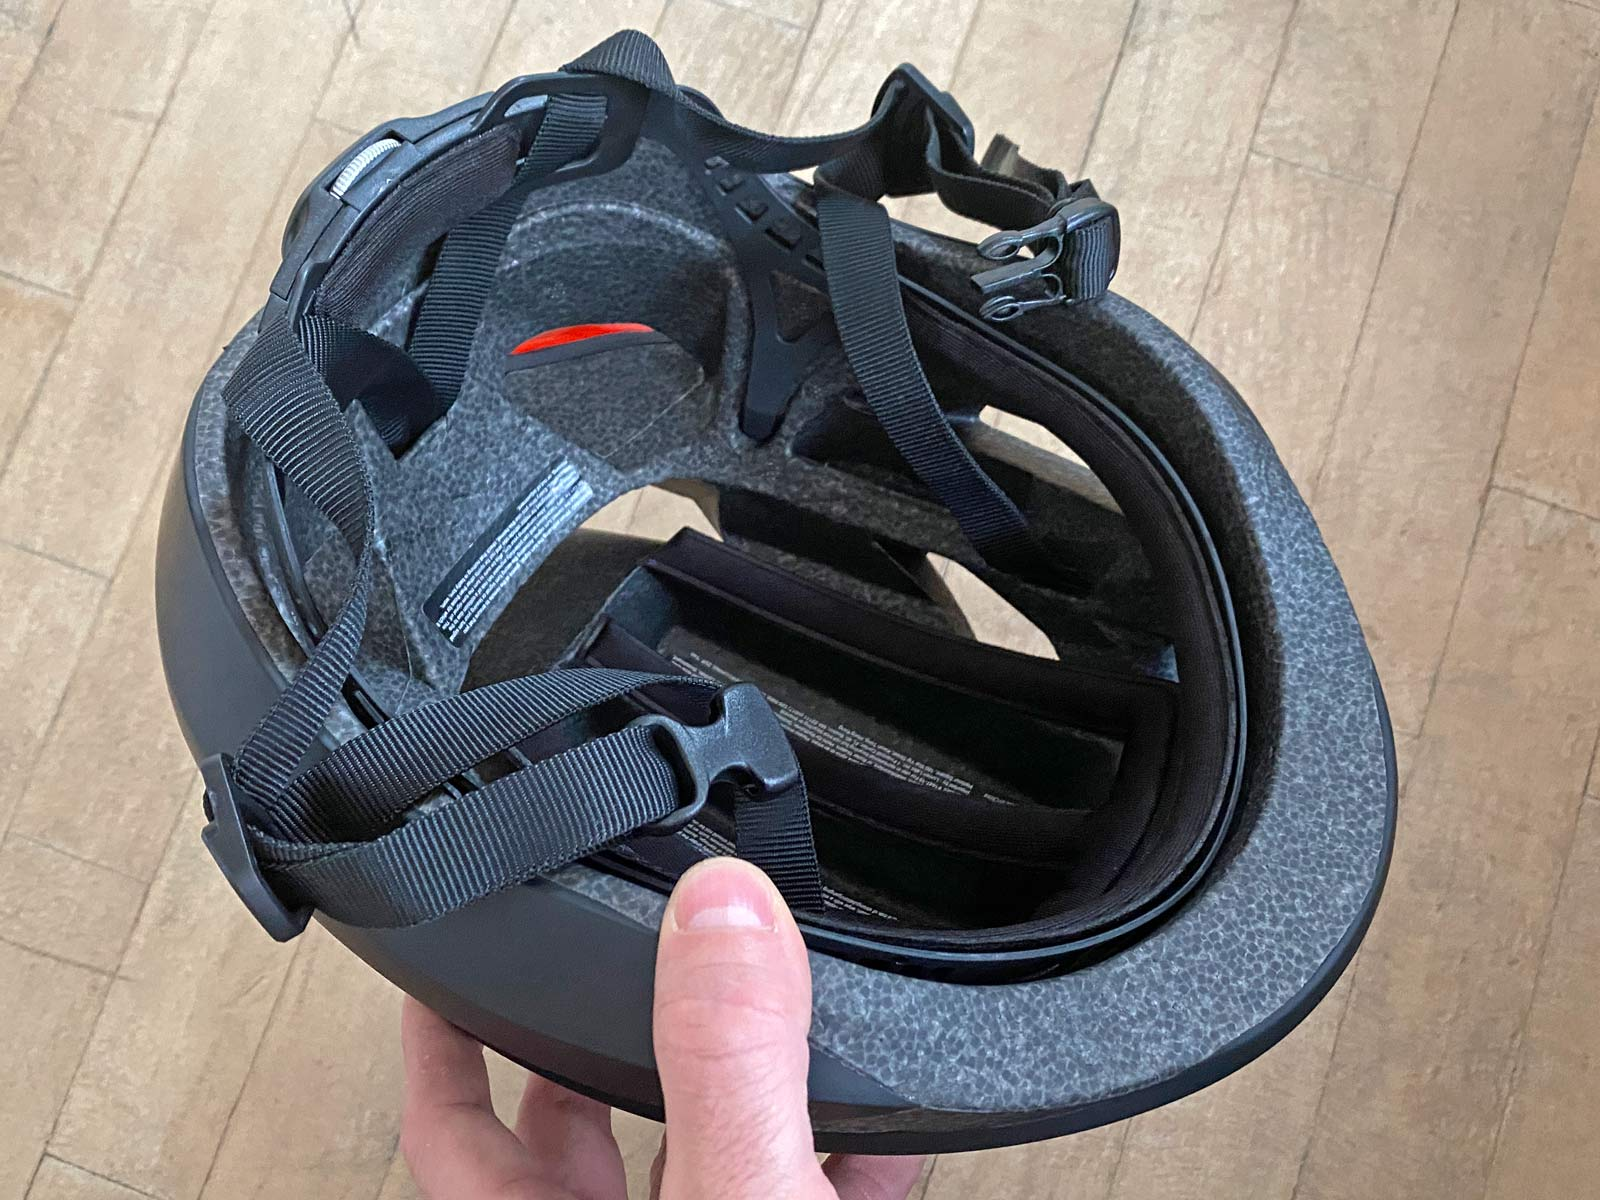 Lumos Ultra smart helmet Review, light aero road helmet with integrated safety visibility lighting turn signals